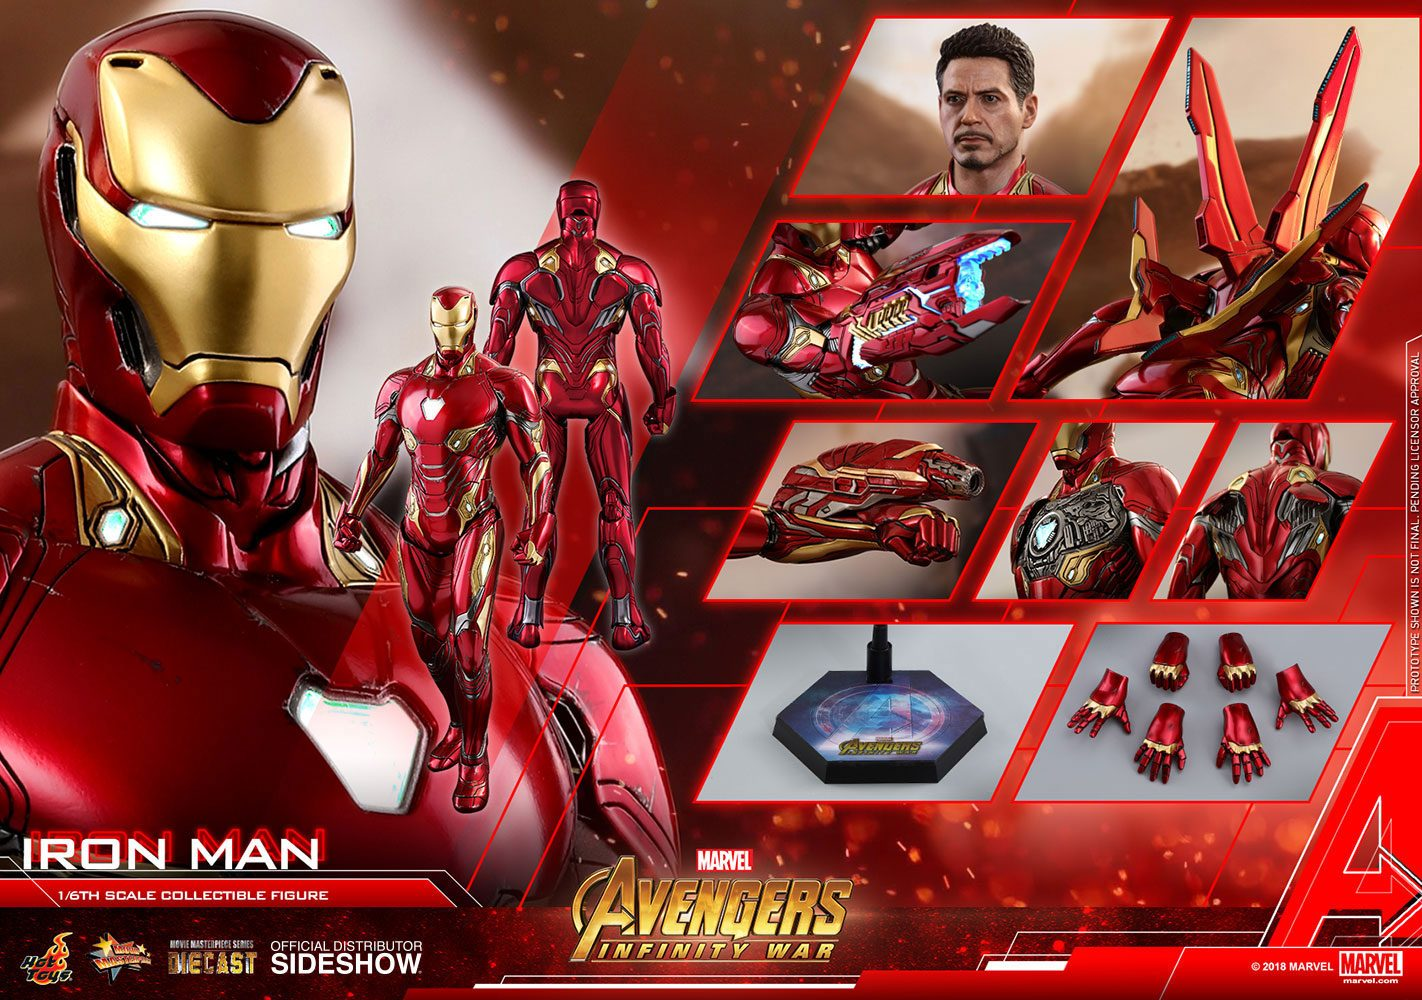 Hot Toys - Avengers Infinity War Diecast Movie Masterpiece mms473-d23 Action Figure 1/6 Iron Man 32 cm